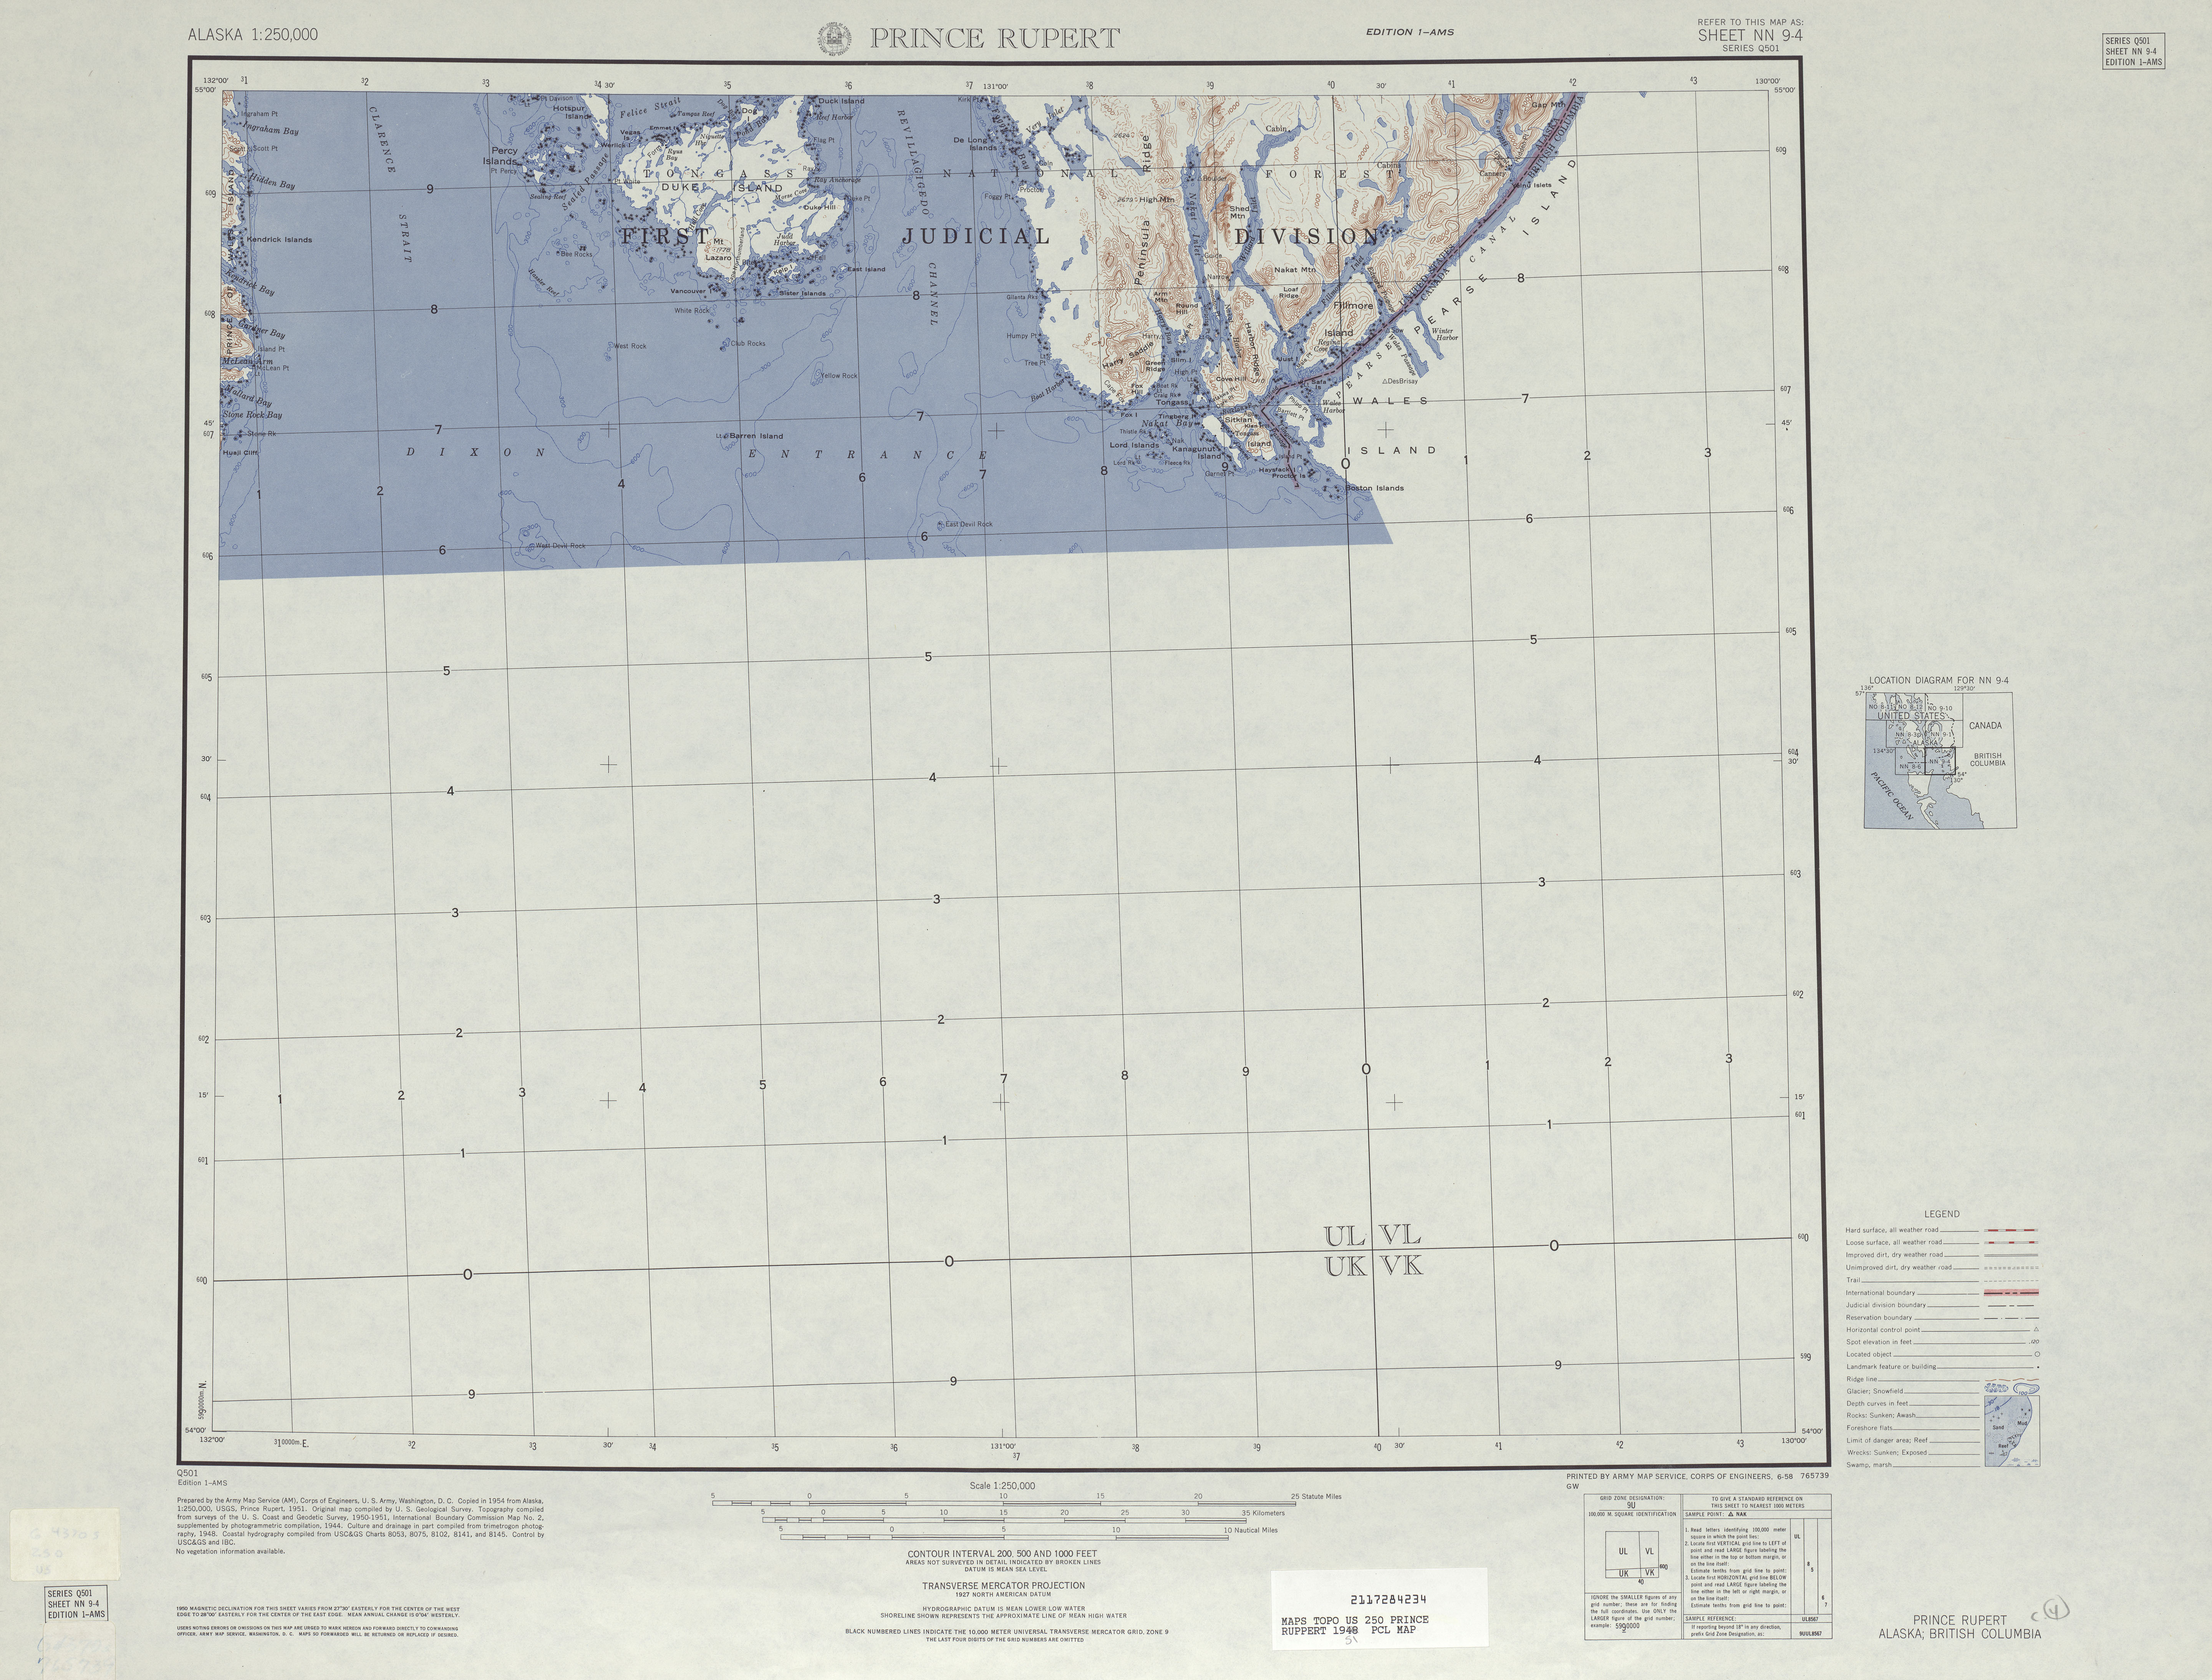 Prince Rupert Topographic Map Sheet, United States 1951